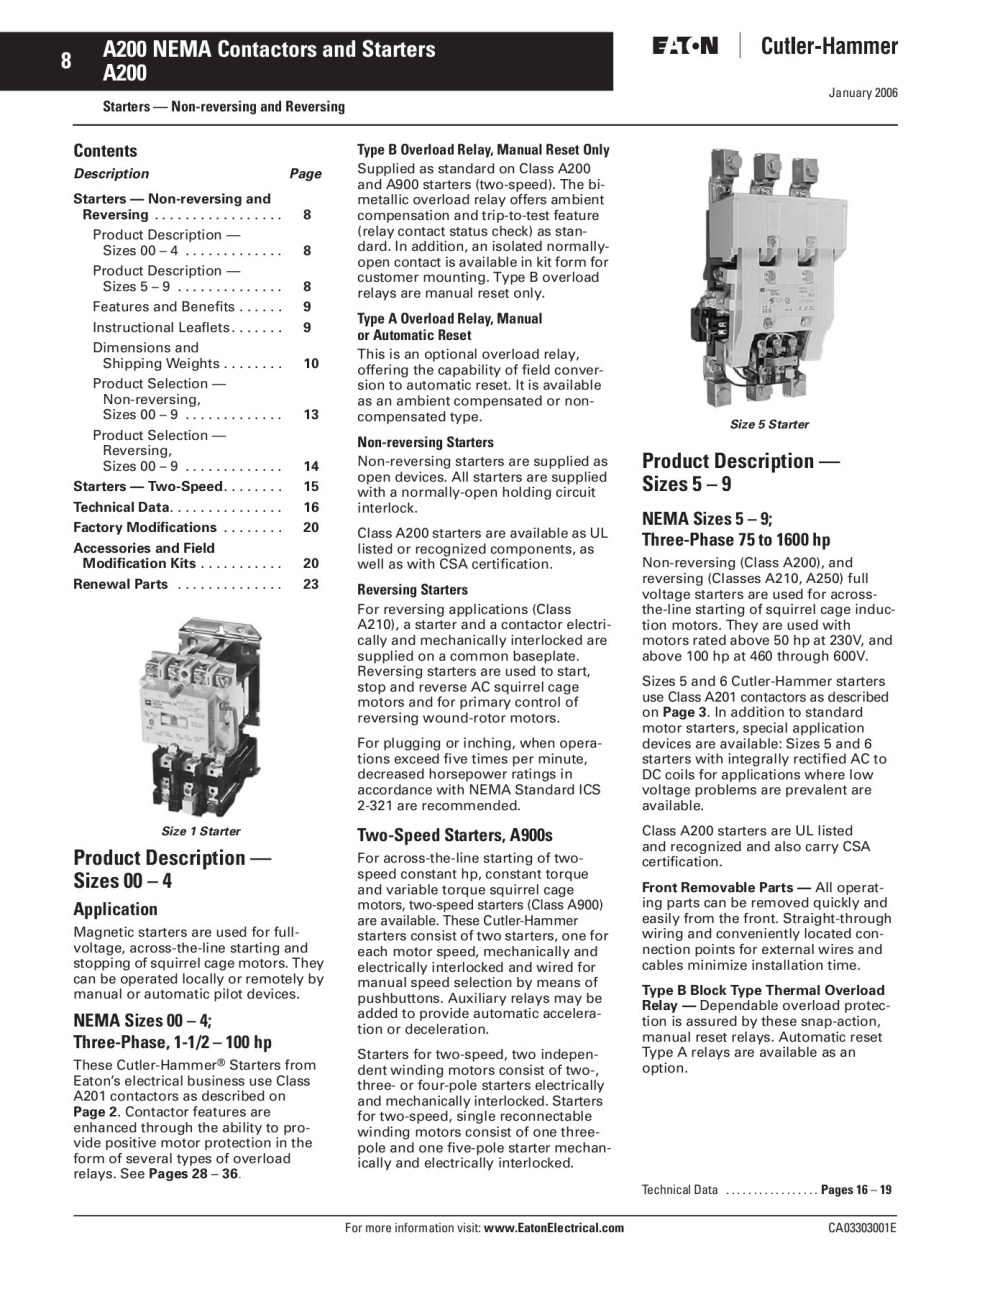 medium resolution of 8 a200 nema contactors and starters a200 pages 1 3 text version fliphtml5